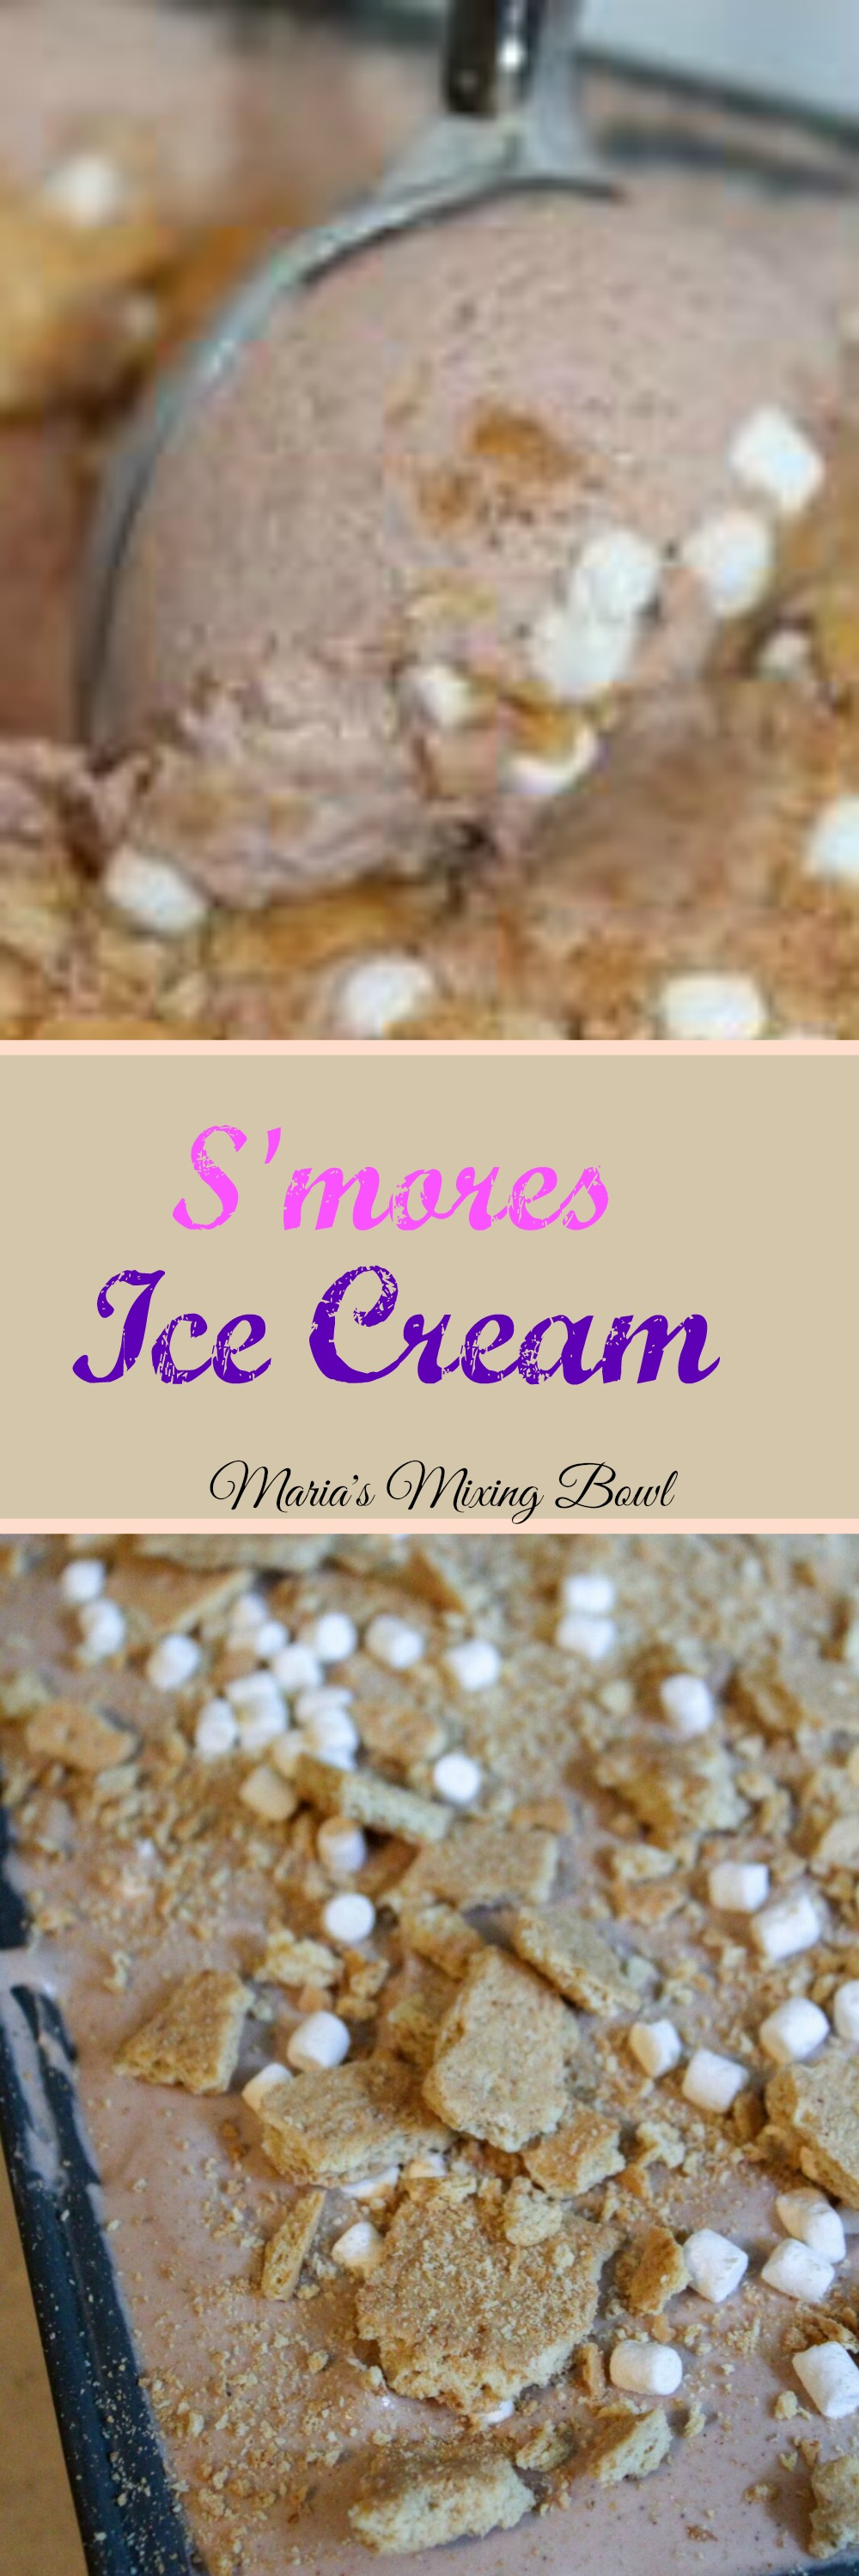 S'more Ice Cream - The Ultimate summer dessert.Easy and so creamy with chocolate, marshmallow and graham crackers!